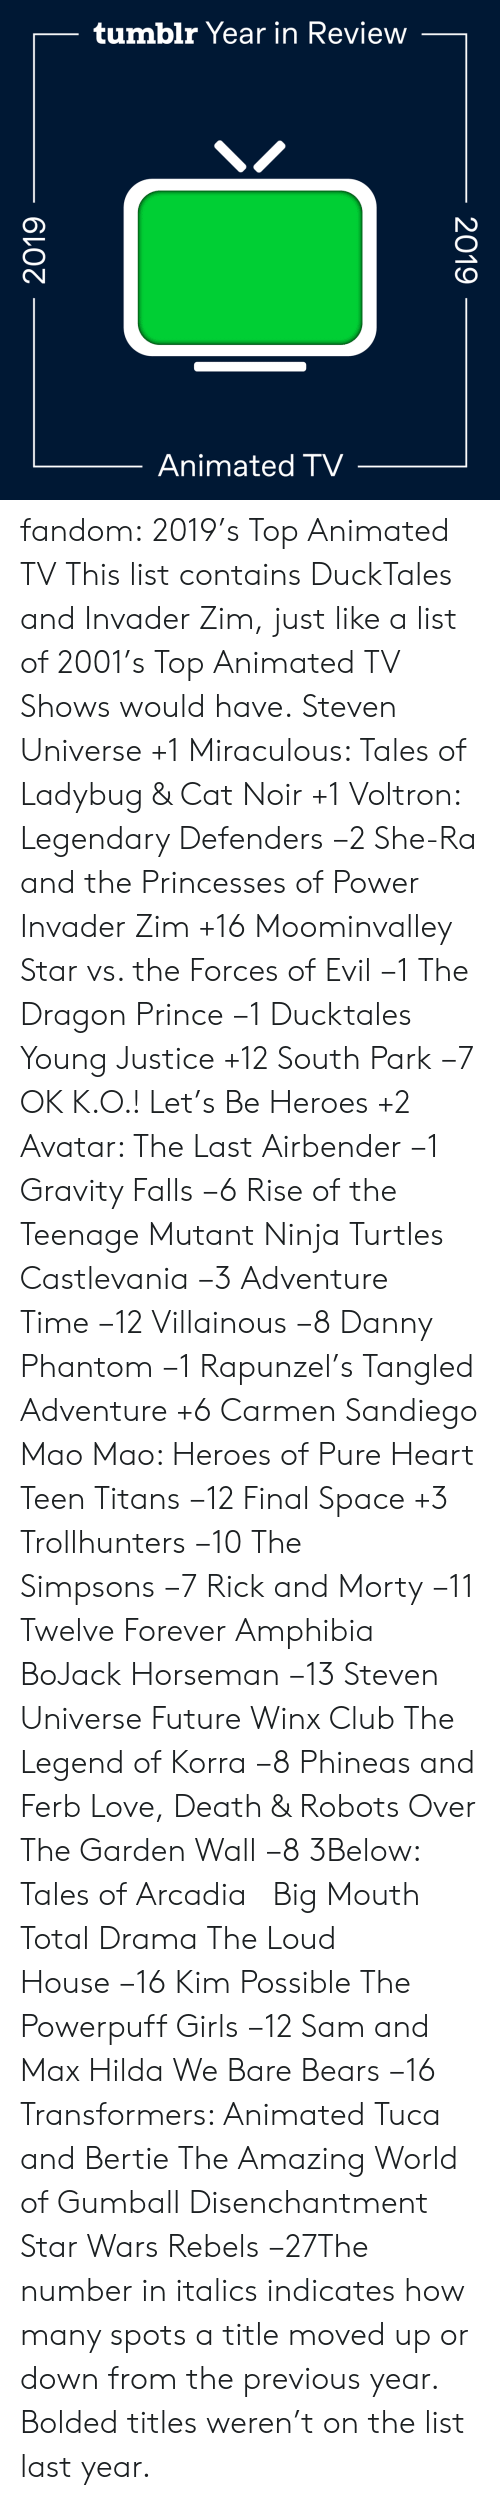 sam: tumblr Year in Review  Animated TV  2019  2019 fandom:  2019's Top Animated TV  This list contains DuckTales and Invader Zim, just like a list of 2001's Top Animated TV Shows would have.  Steven Universe +1  Miraculous: Tales of Ladybug & Cat Noir +1  Voltron: Legendary Defenders −2  She-Ra and the Princesses of Power   Invader Zim +16  Moominvalley  Star vs. the Forces of Evil −1  The Dragon Prince −1  Ducktales  Young Justice +12  South Park −7  OK K.O.! Let's Be Heroes +2  Avatar: The Last Airbender −1  Gravity Falls −6  Rise of the Teenage Mutant Ninja Turtles  Castlevania −3  Adventure Time −12  Villainous −8  Danny Phantom −1  Rapunzel's Tangled Adventure +6  Carmen Sandiego  Mao Mao: Heroes of Pure Heart  Teen Titans −12  Final Space +3  Trollhunters −10  The Simpsons −7  Rick and Morty −11  Twelve Forever  Amphibia  BoJack Horseman −13  Steven Universe Future  Winx Club  The Legend of Korra −8  Phineas and Ferb  Love, Death & Robots  Over The Garden Wall −8  3Below: Tales of Arcadia    Big Mouth  Total Drama  The Loud House −16  Kim Possible  The Powerpuff Girls −12  Sam and Max  Hilda  We Bare Bears −16  Transformers: Animated  Tuca and Bertie  The Amazing World of Gumball  Disenchantment Star Wars Rebels −27The number in italics indicates how many spots a title moved up or down from the previous year. Bolded titles weren't on the list last year.